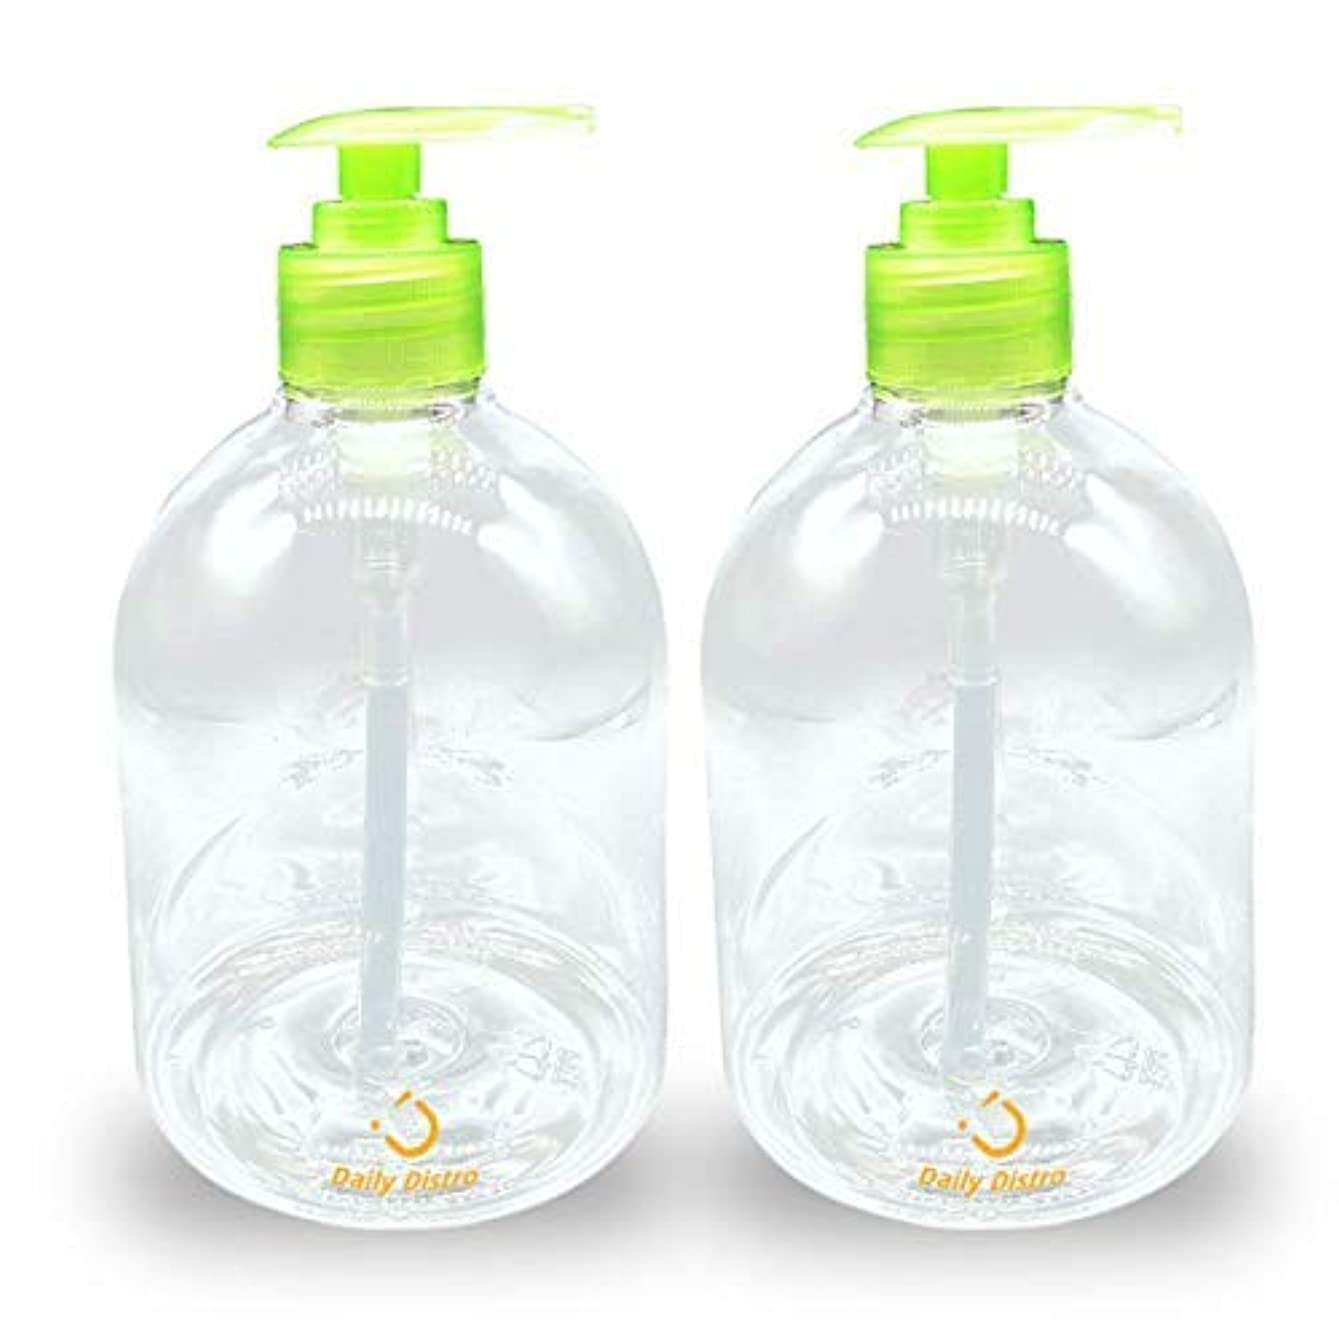 Pack of 2 Clear PET Empty Bottle with Green Pump 16-Ounce, great for Essential Oils, Lotions, Liquid Soaps [並行輸入品]